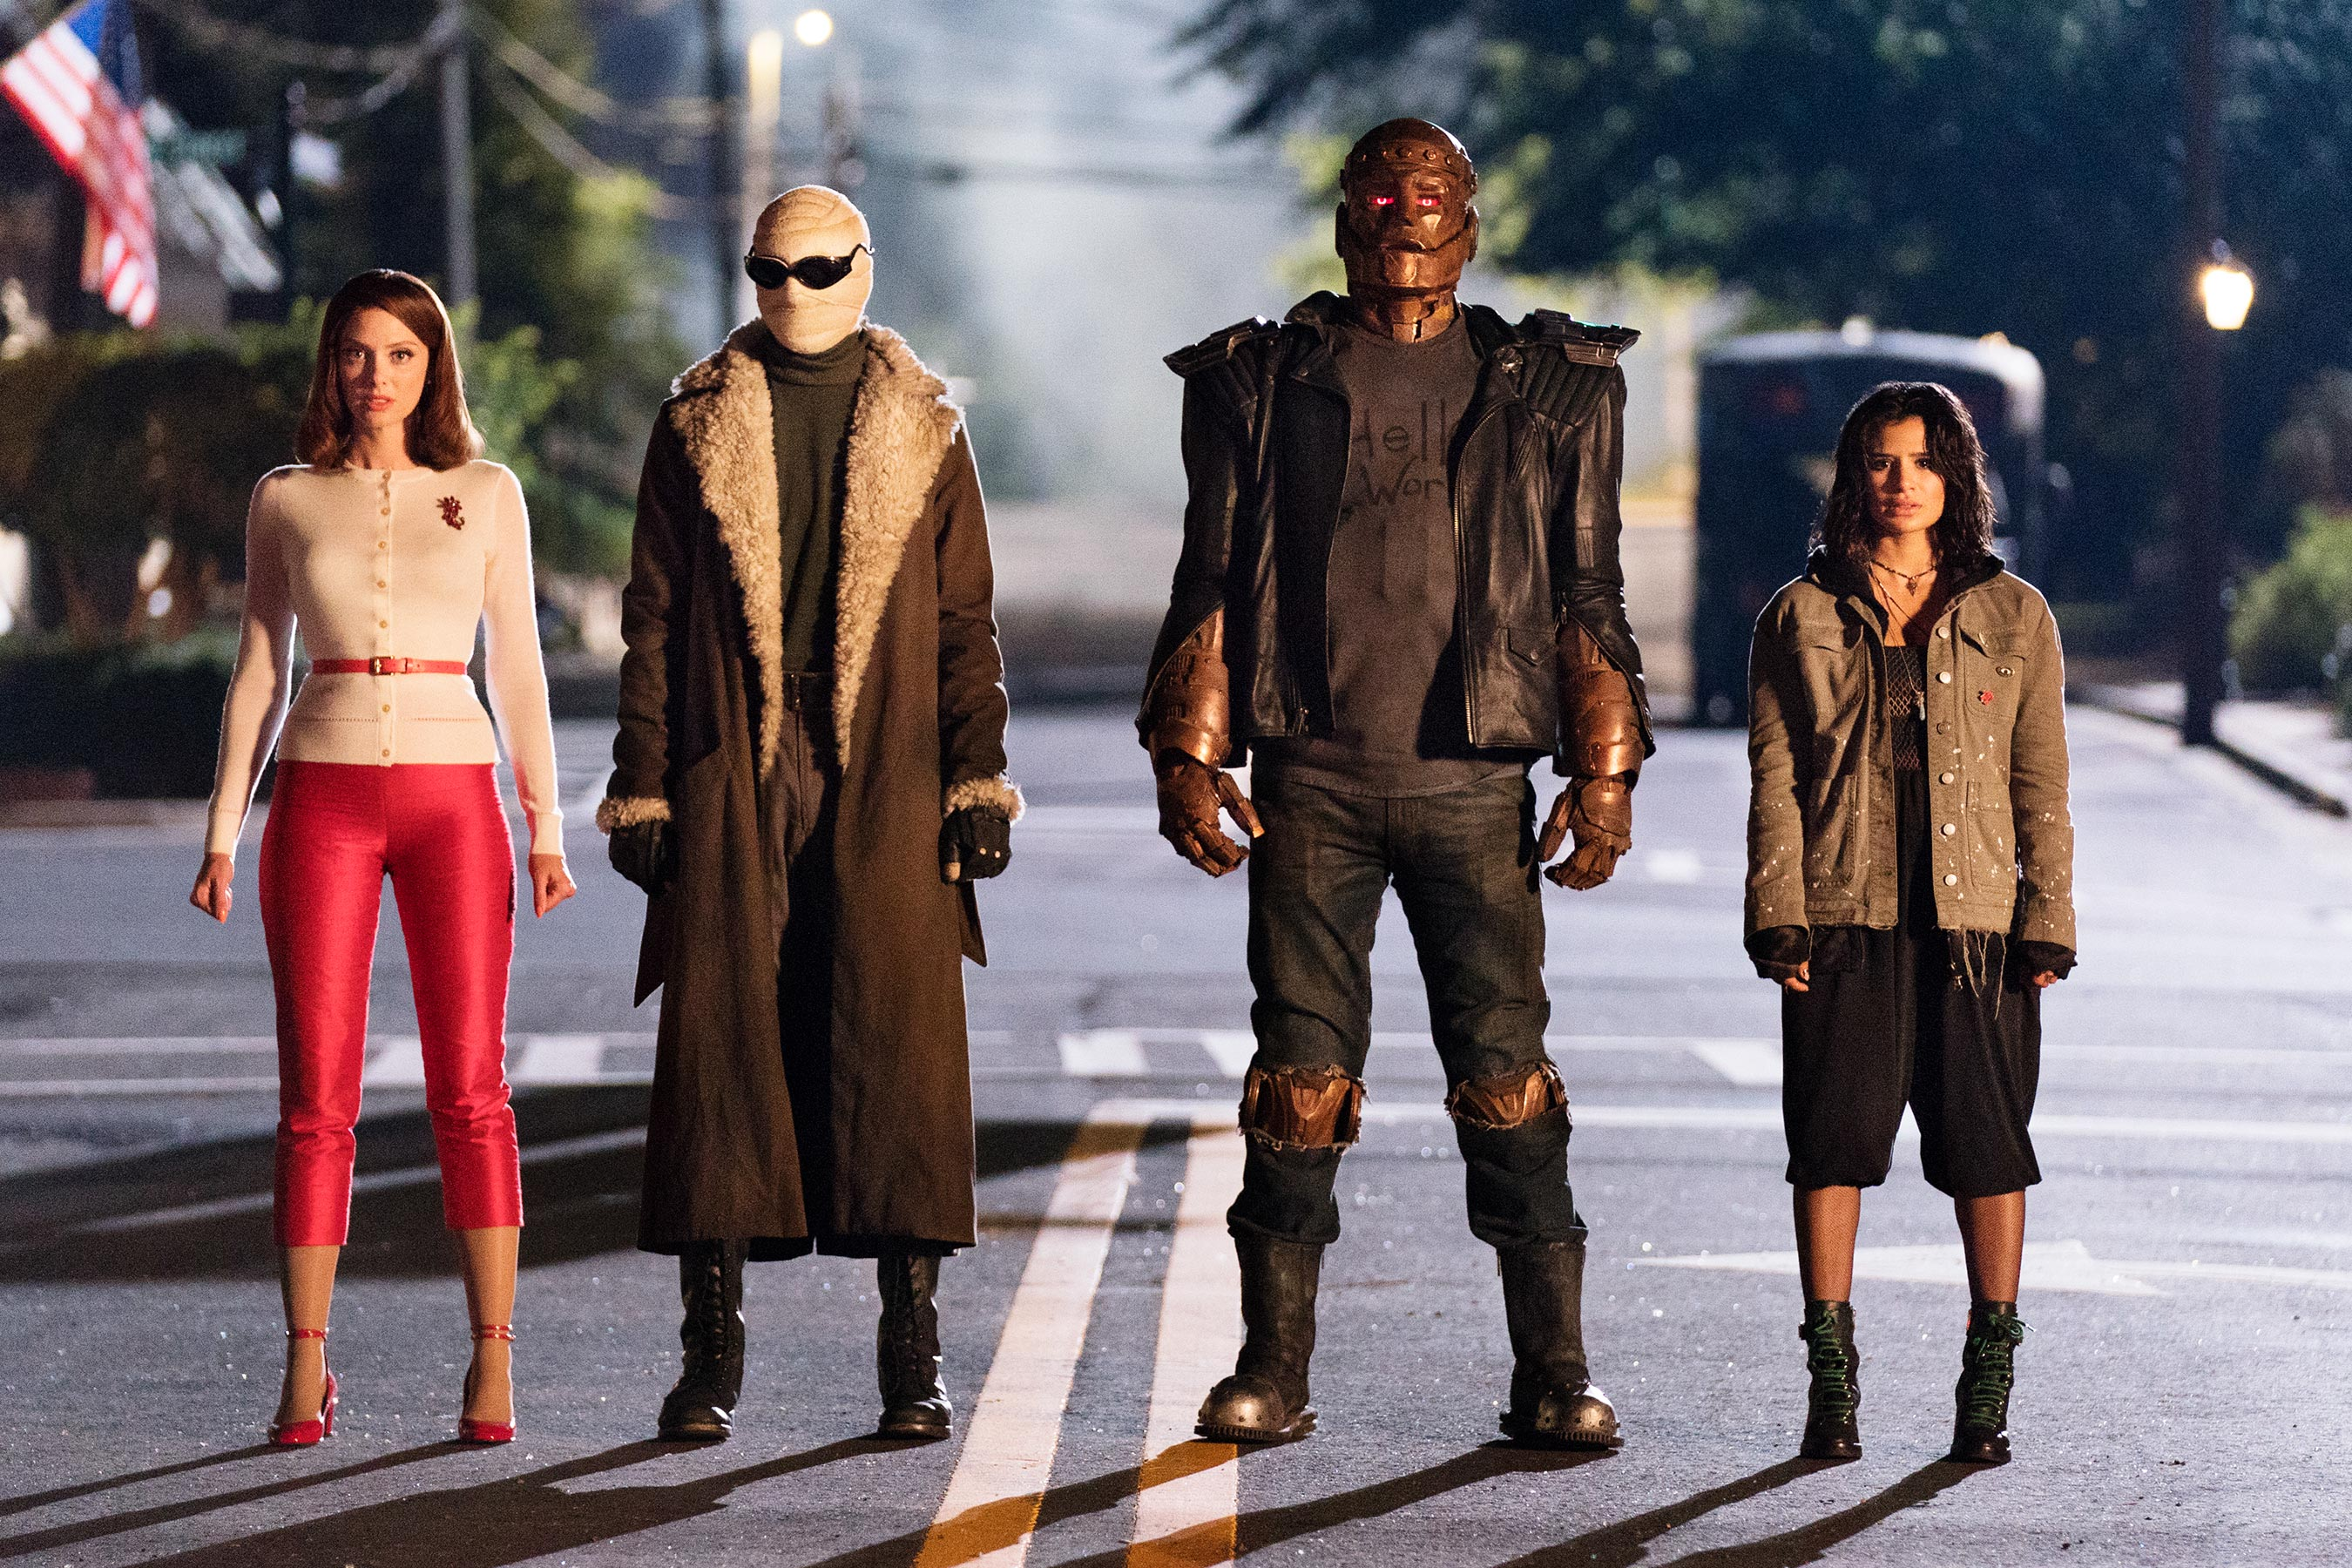 HBO and DC Universe to partner for Doom Patrol season 2